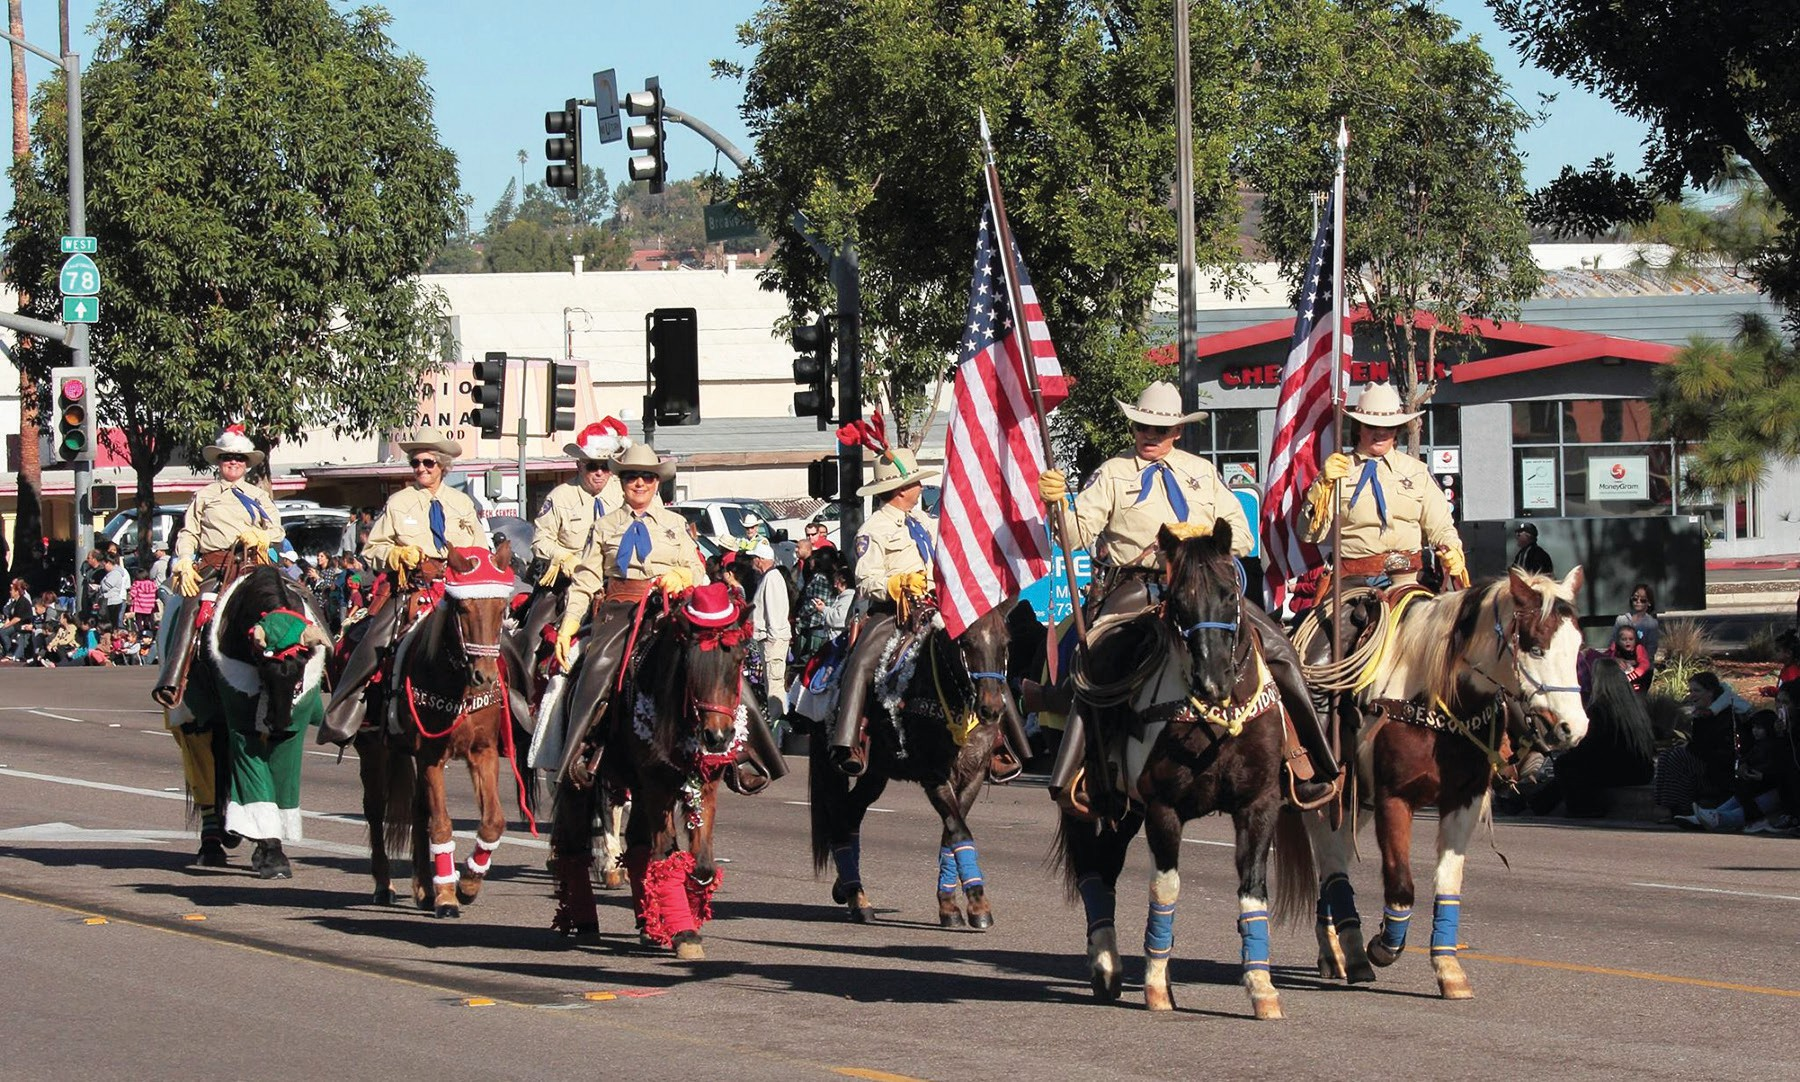 The Escondido Mounted Posse Color Guard will lead off the parade.